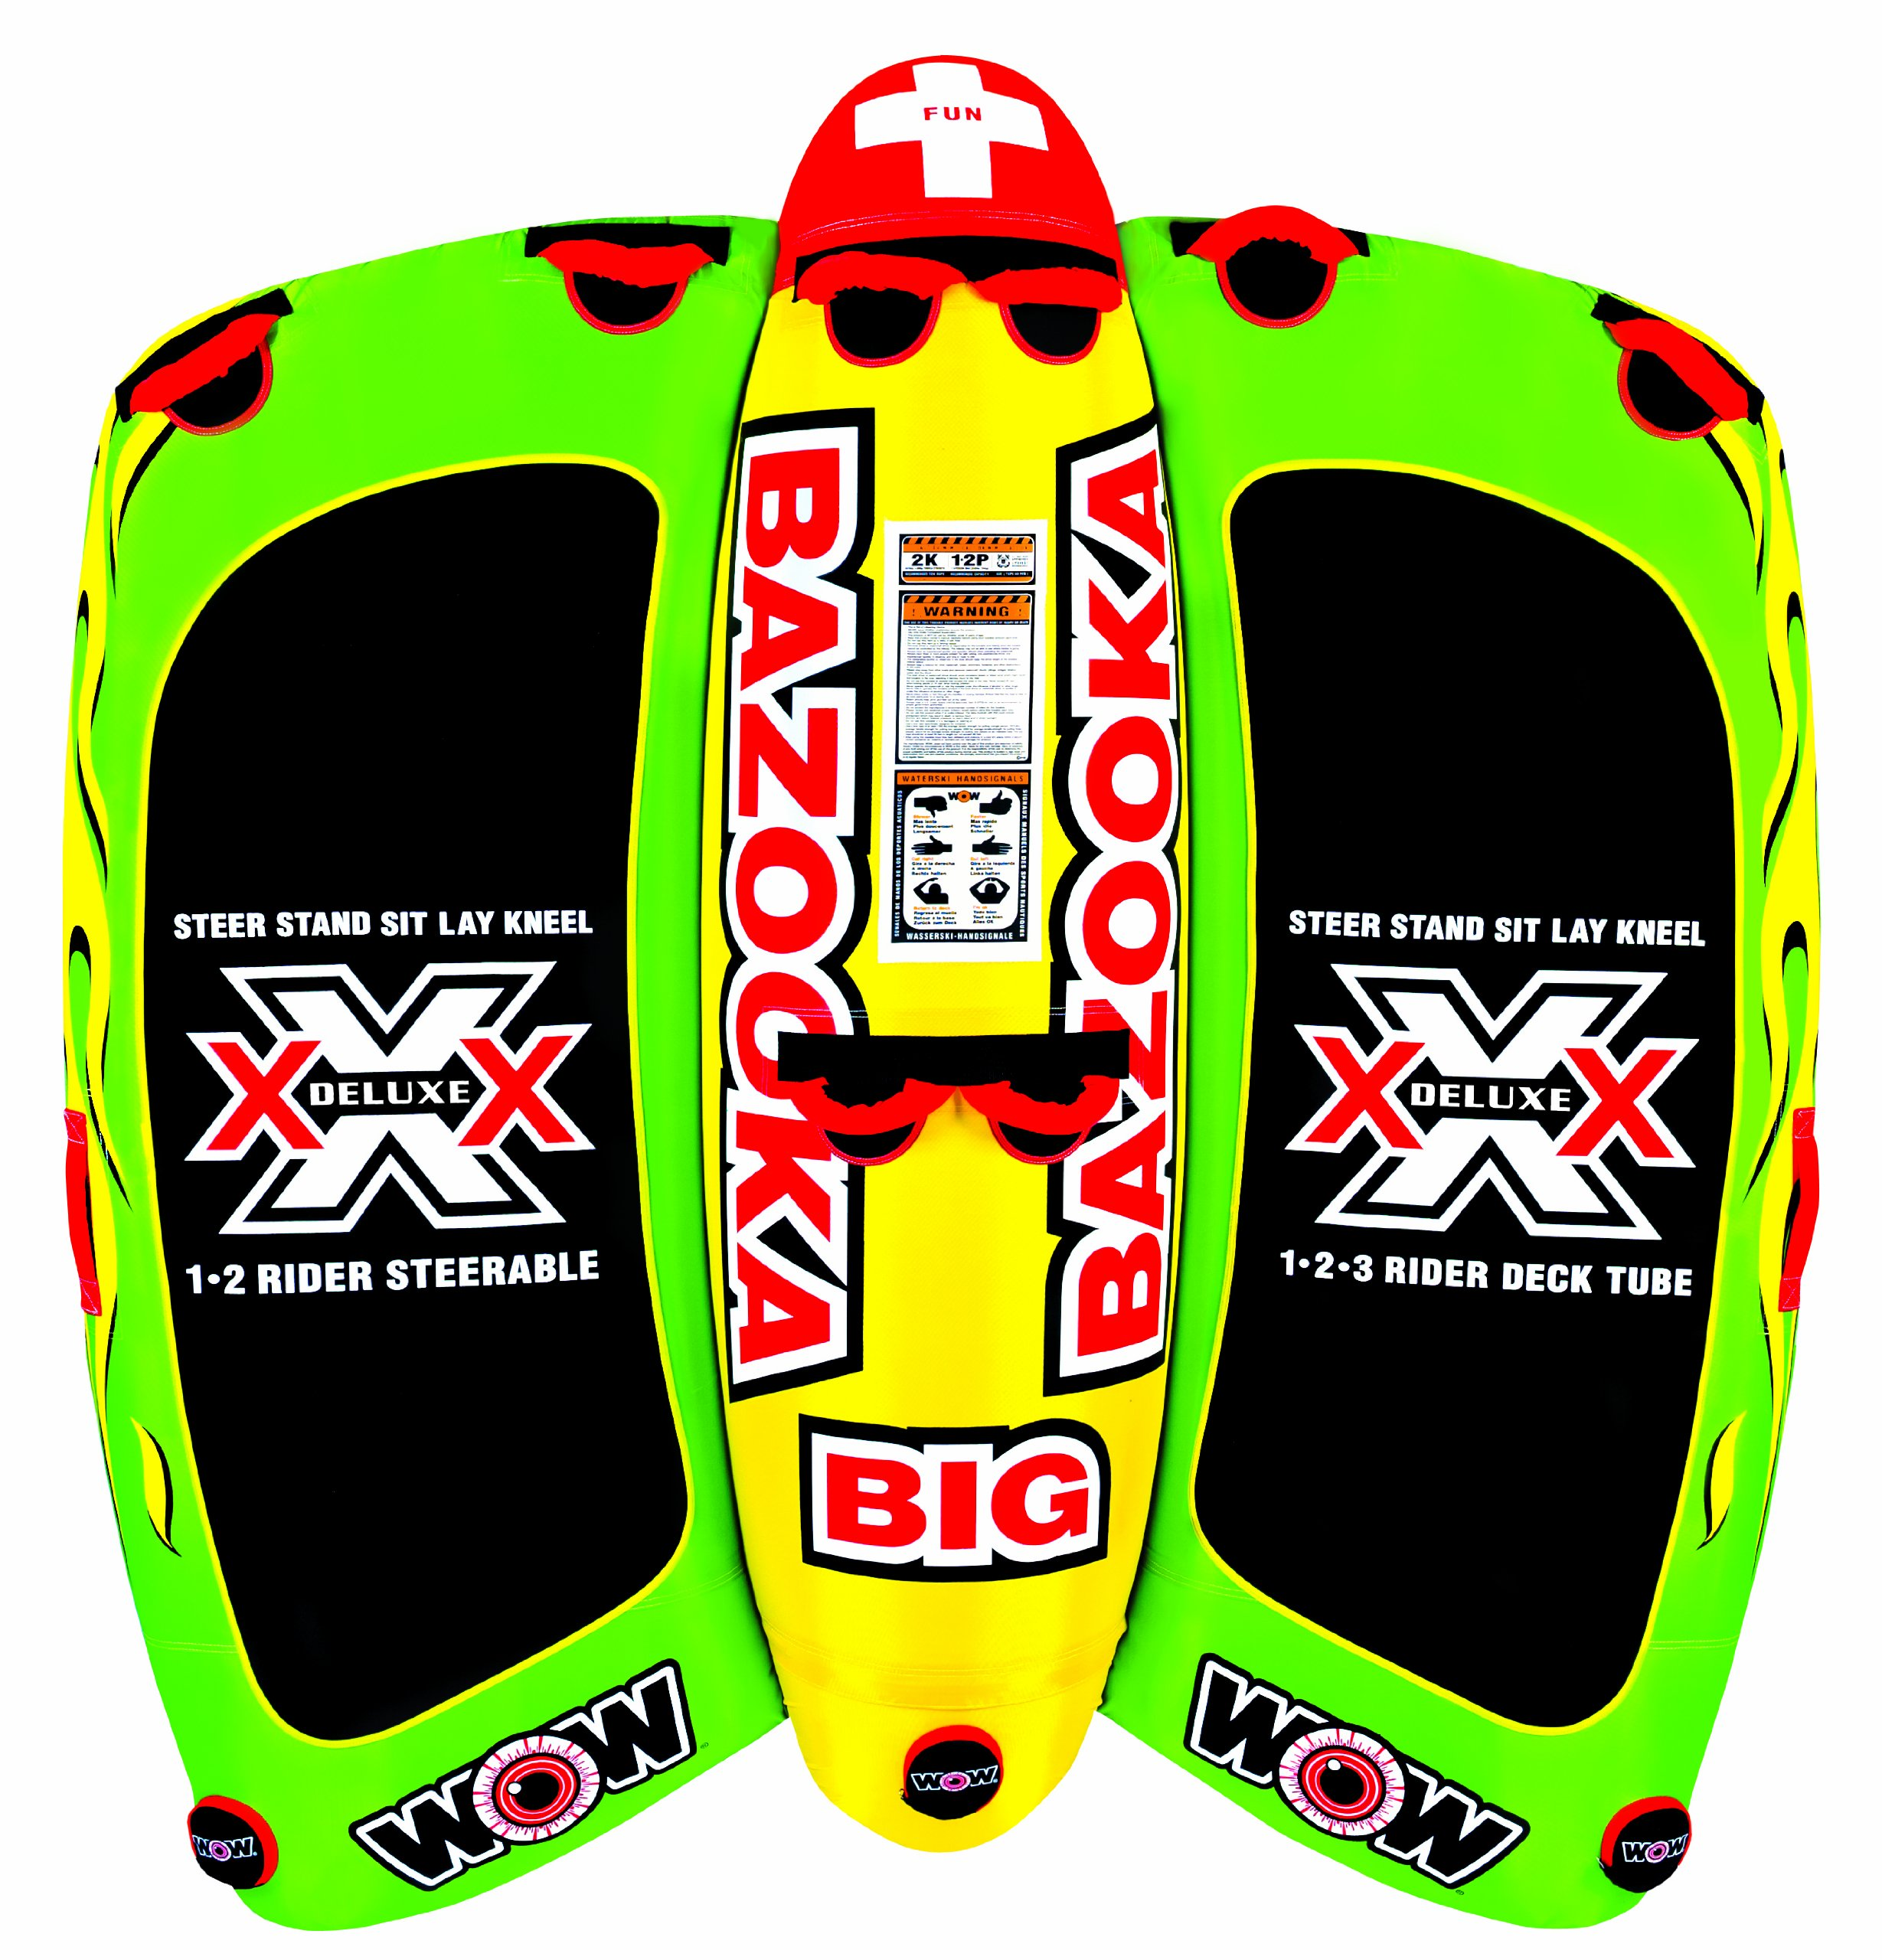 Wow World of Watersports 13-1010, Big Bazooka 1 to 4 Person, Inflatable Towable Deck Tube, Steerable by WOW Sports